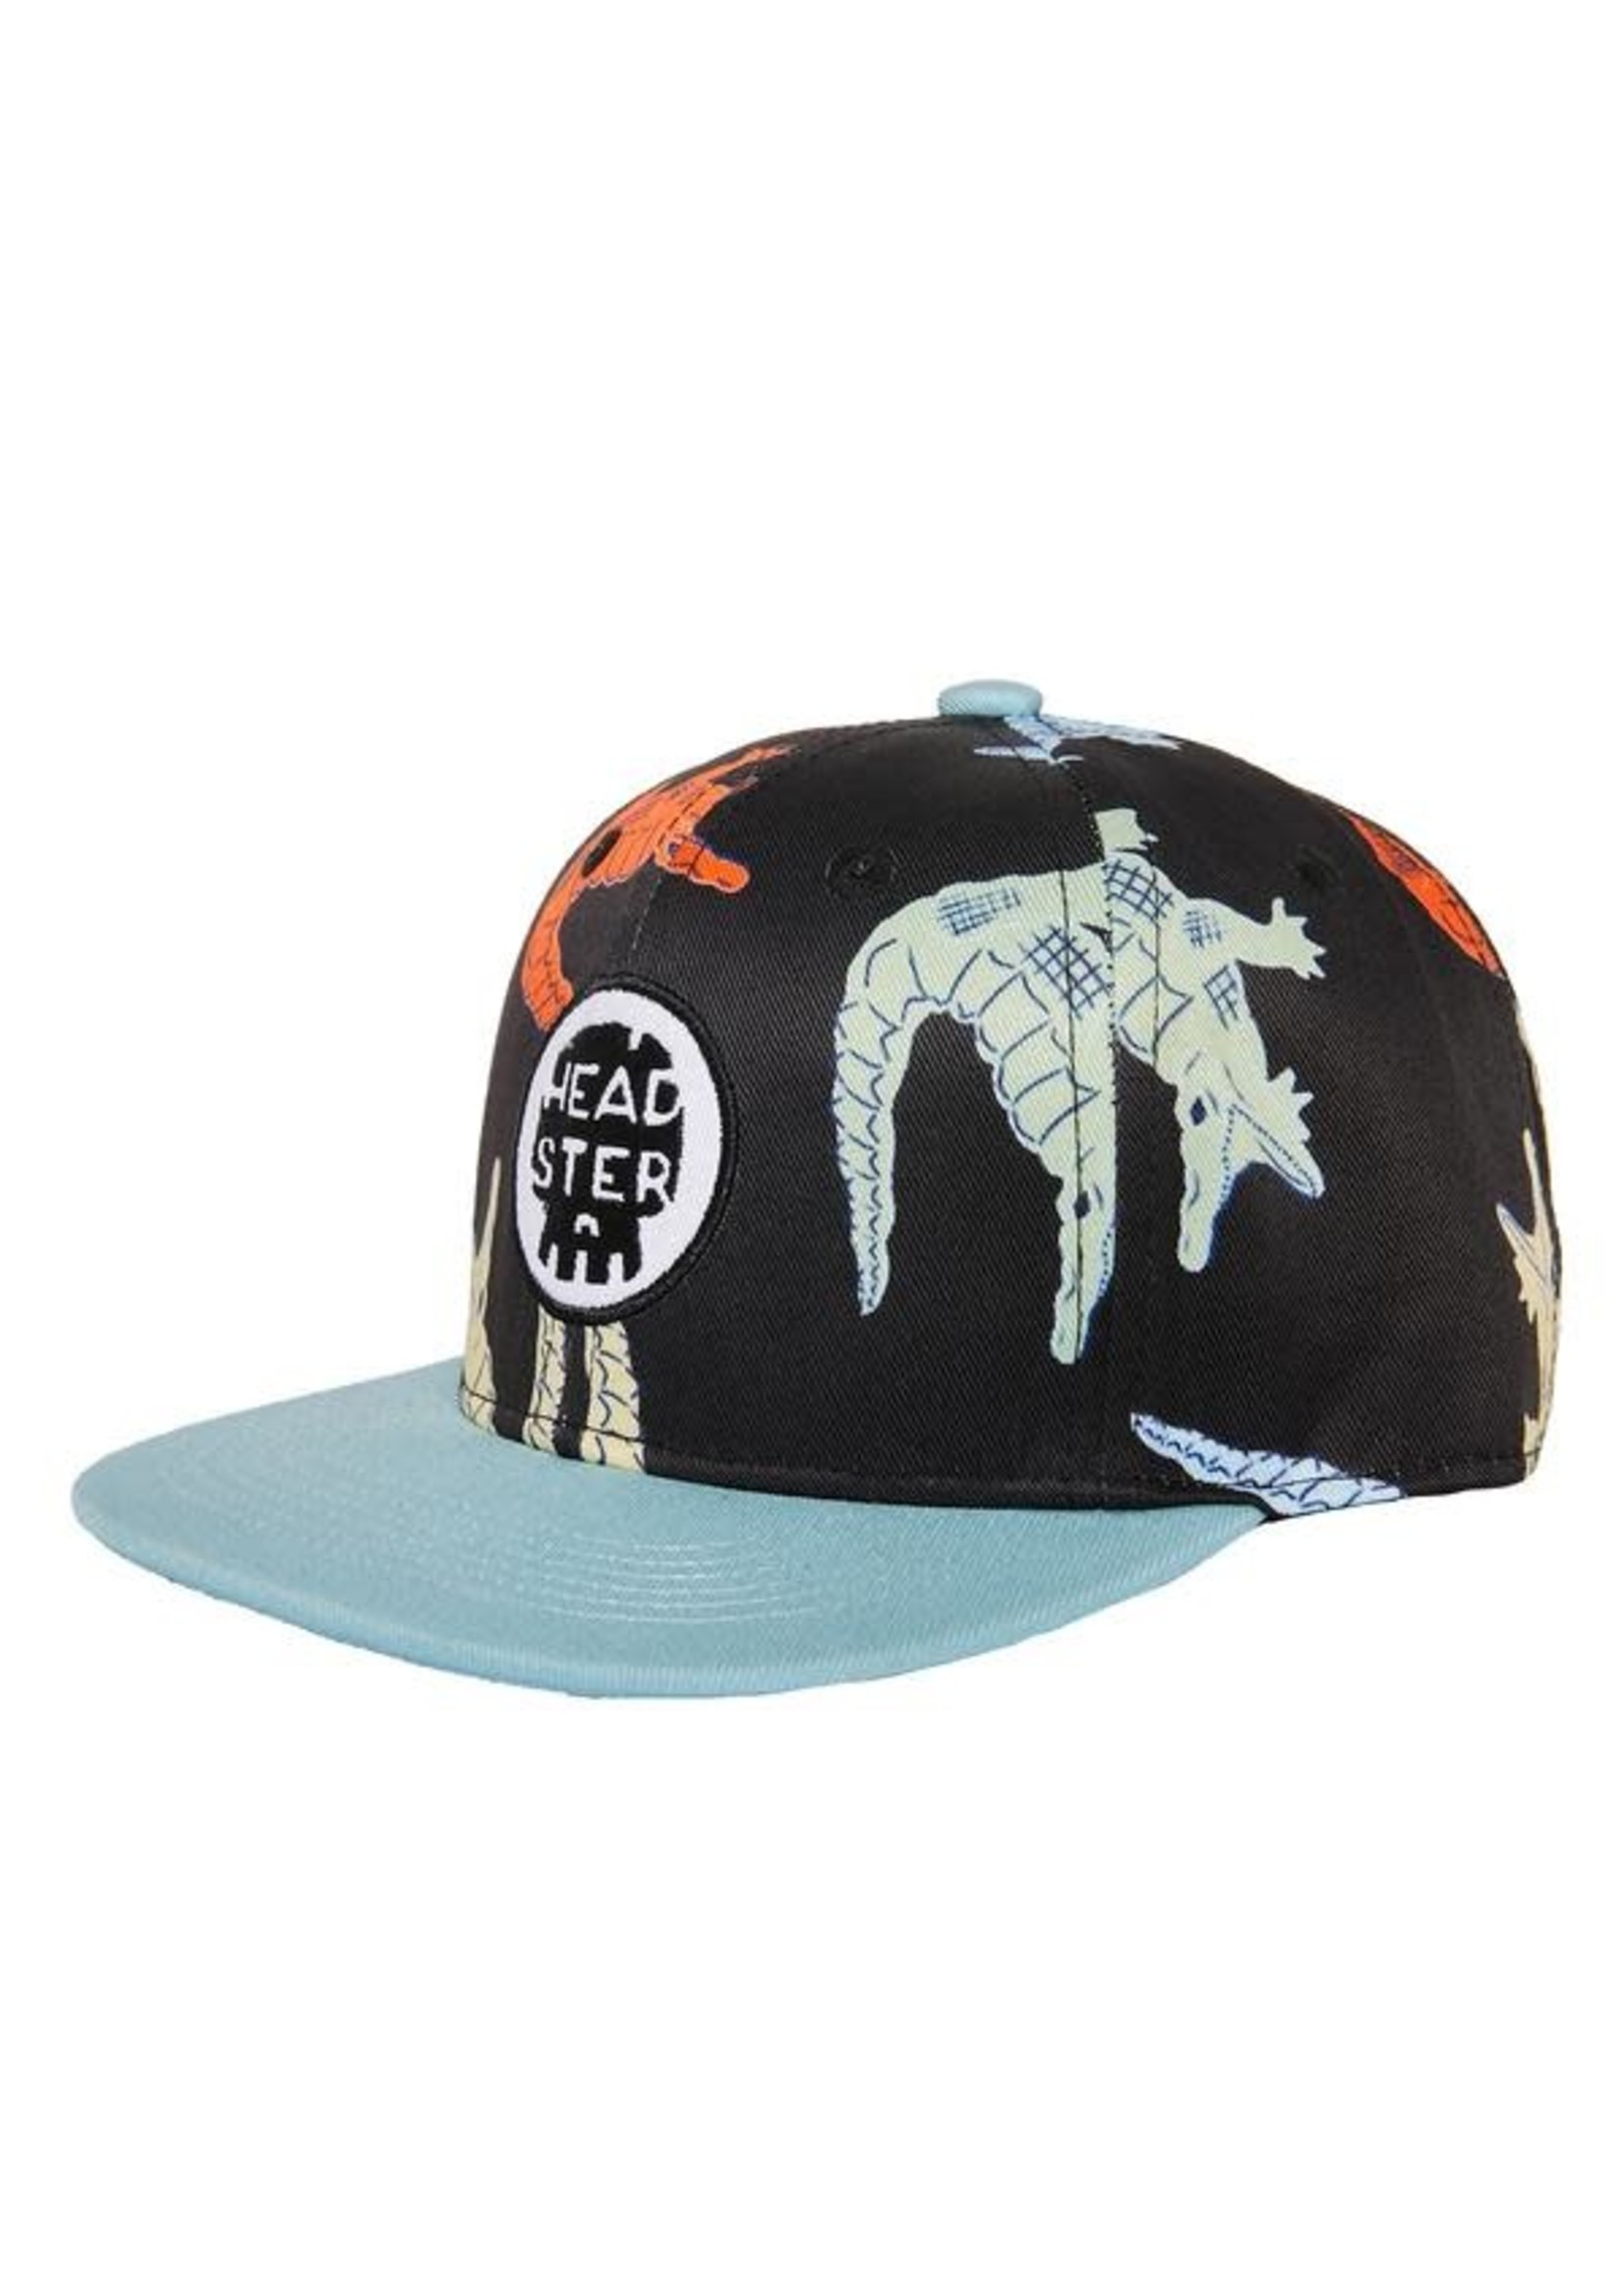 Headster Cap (Colocroco)